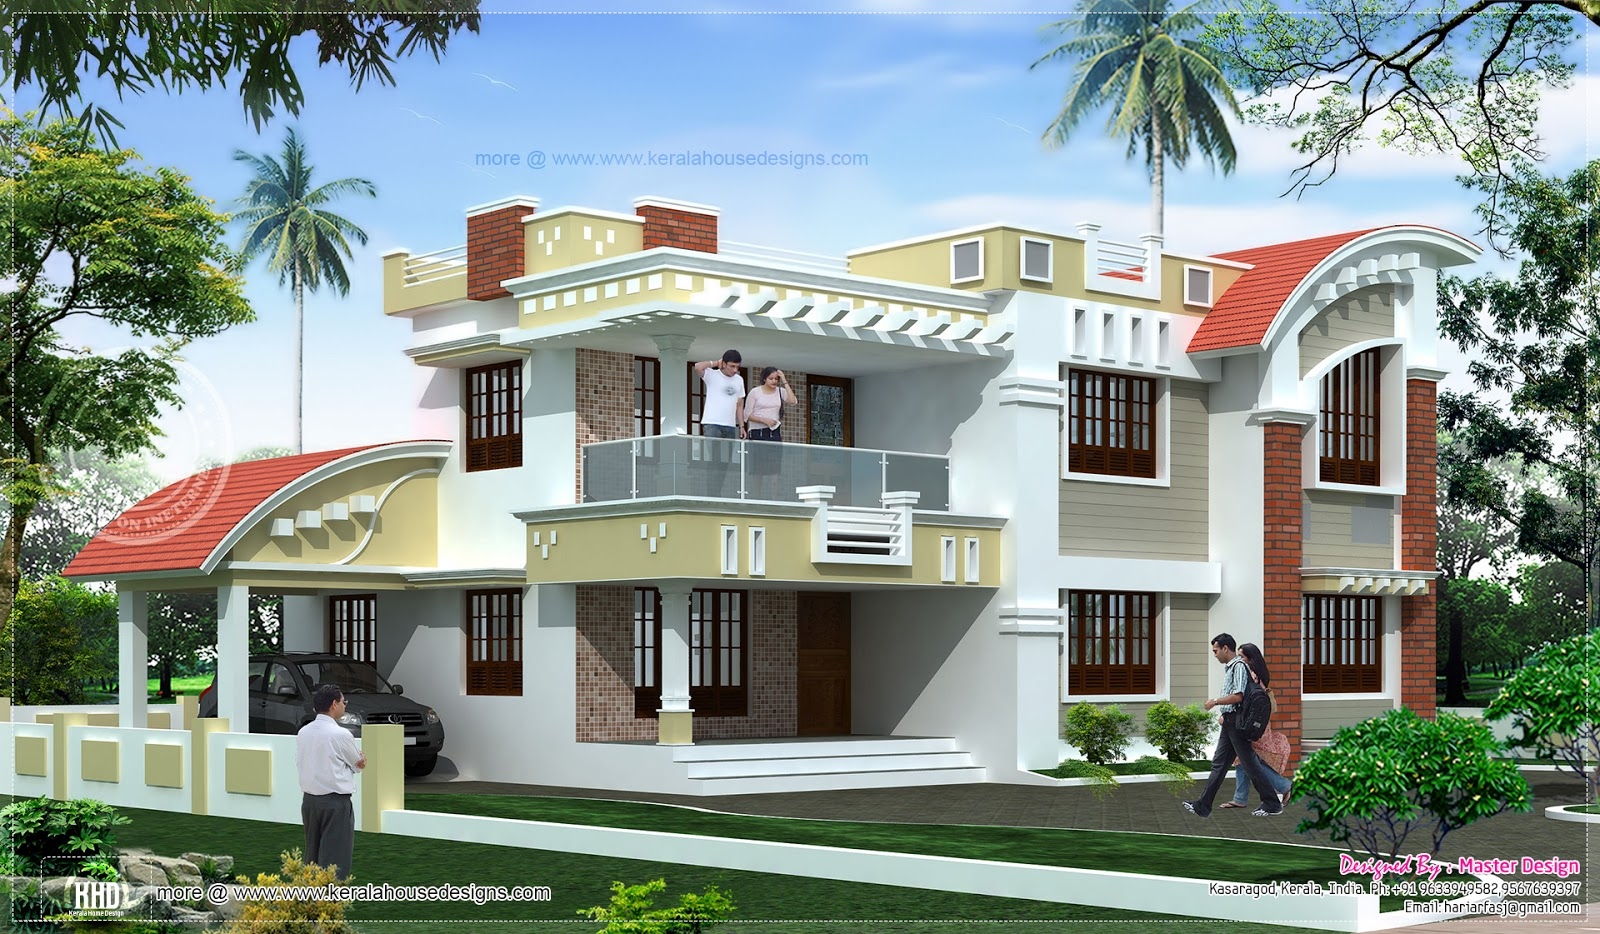 A Mixed Style Kerala Villa Elevation With Curved Roofs